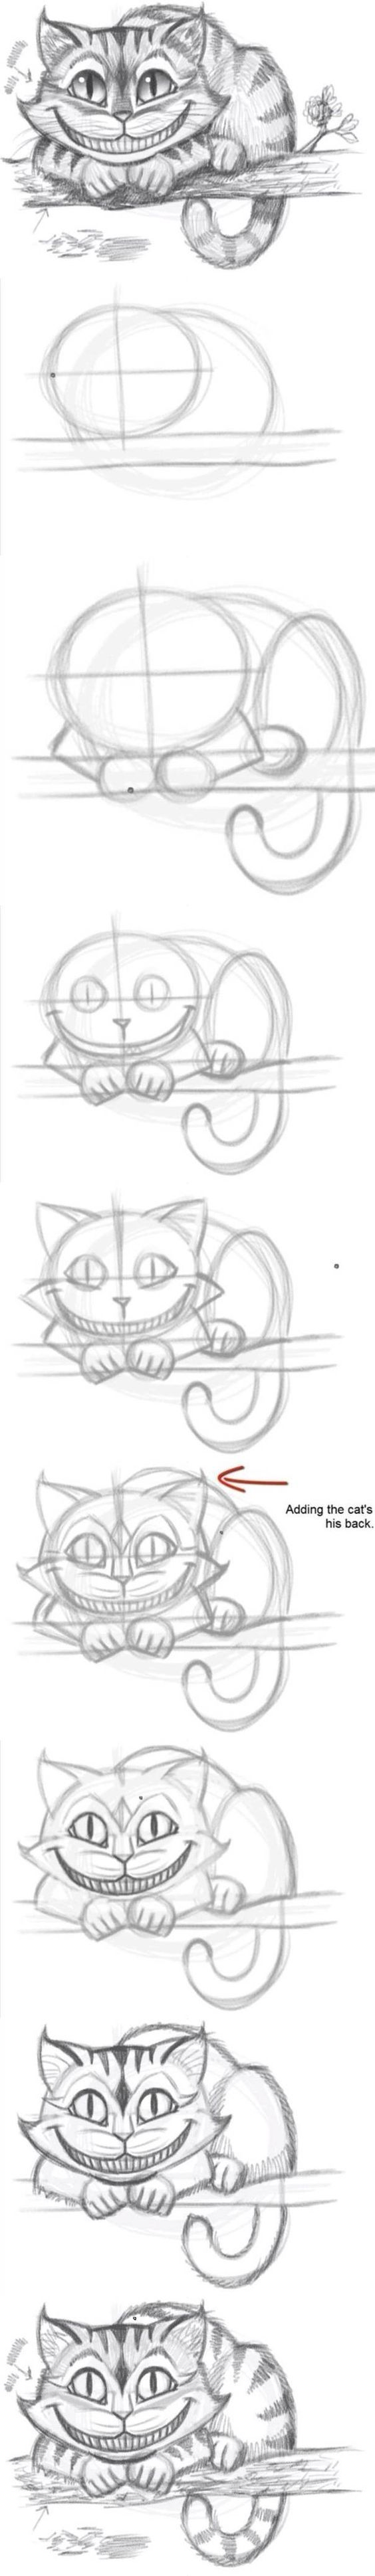 Today's Drawing Class 101: Cartoons and animations || DIY Easily Draw the Cheshire Cat Tutorial: